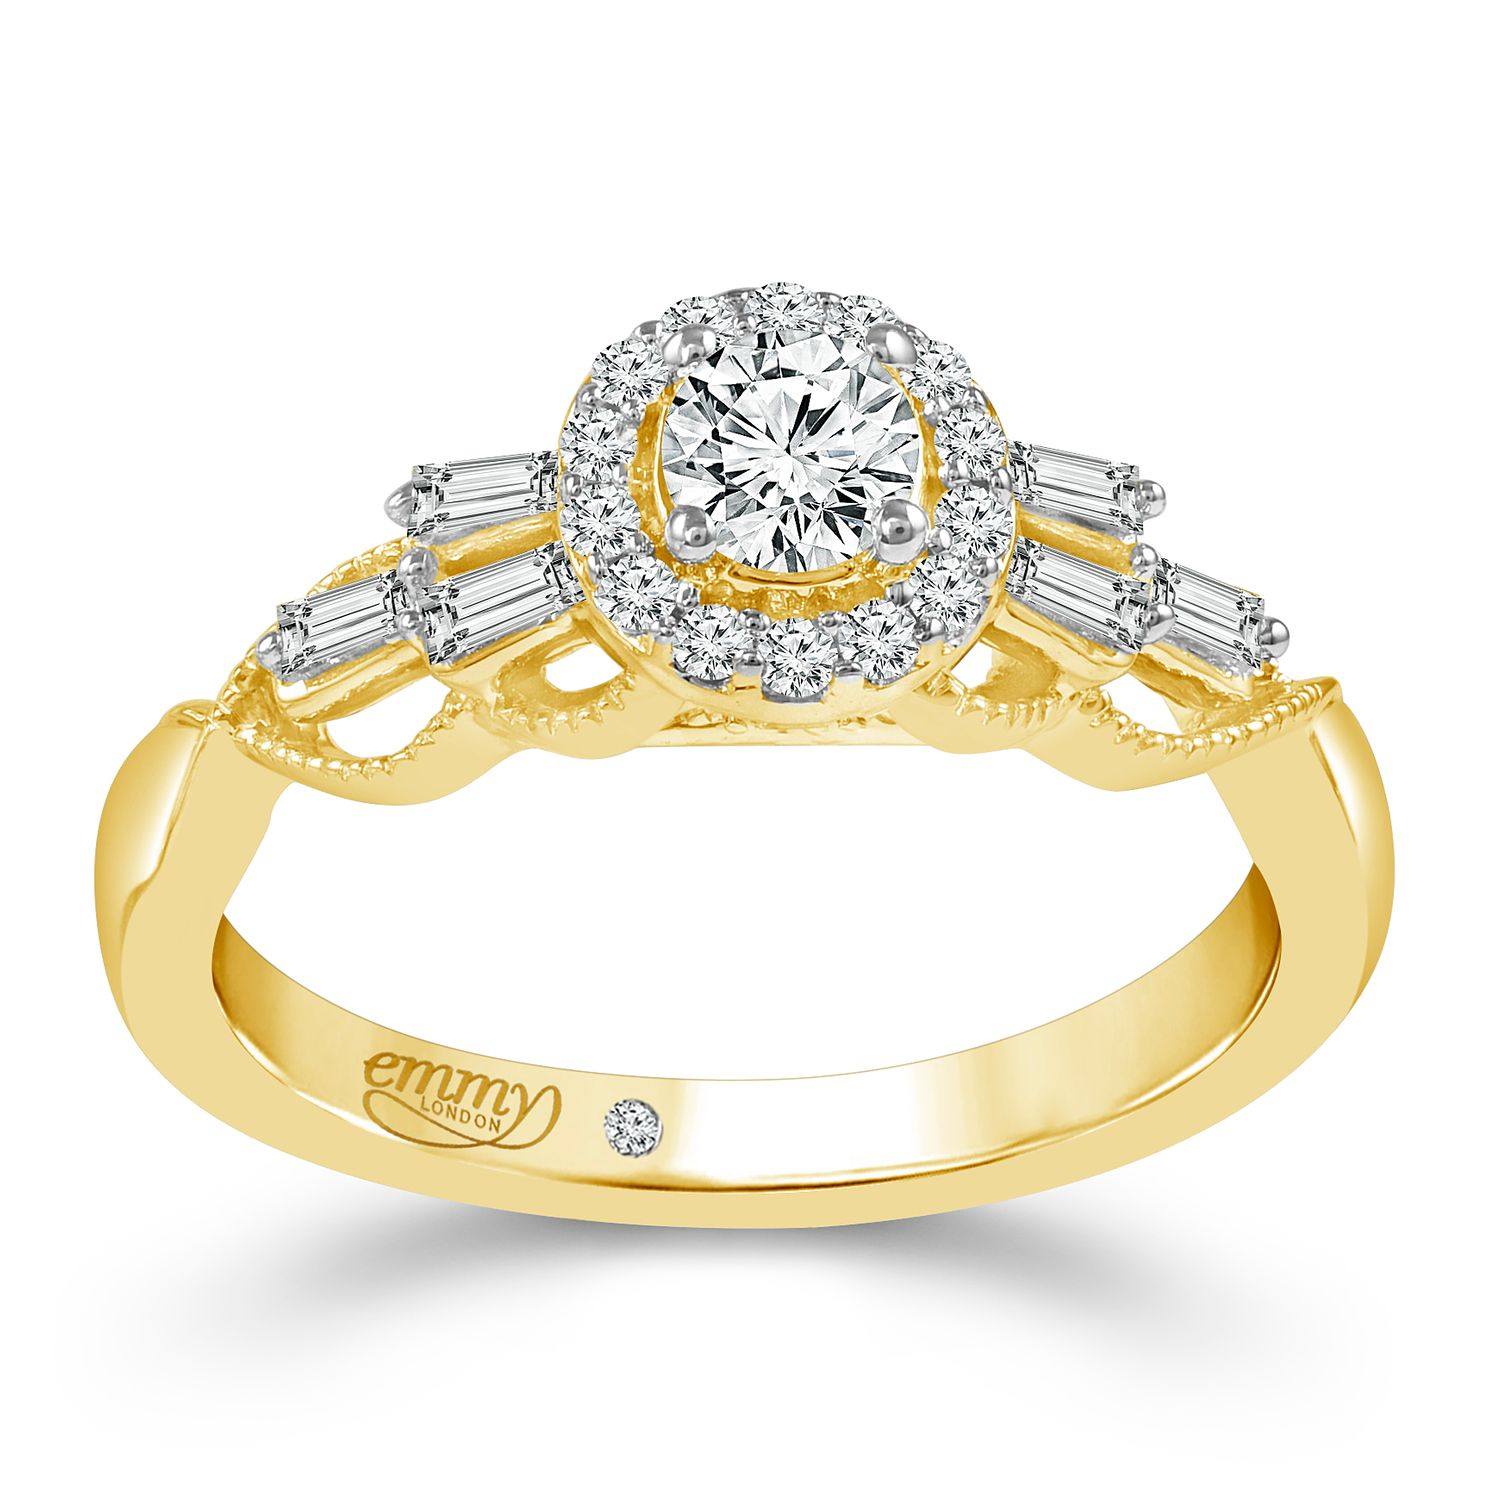 Emmy London 18ct Yellow Gold 1/2ct Diamond Halo Ring - Product number 6450377